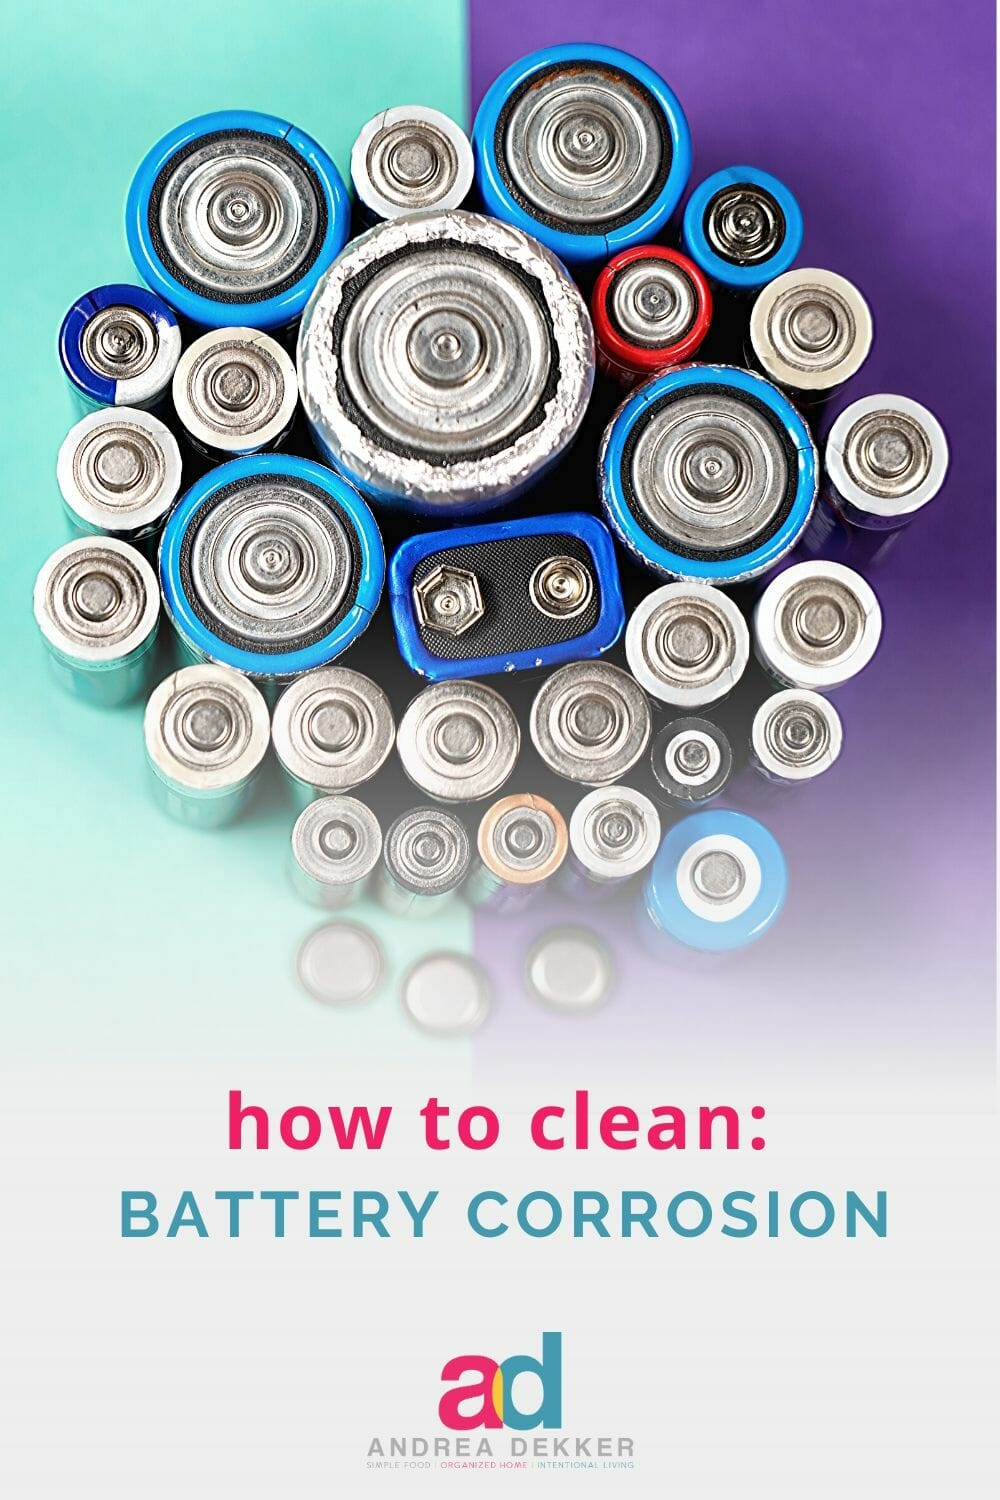 Learn how to clean battery corrosion in 6 simple steps. Your toys and electronics will work like new again! via @andreadekker